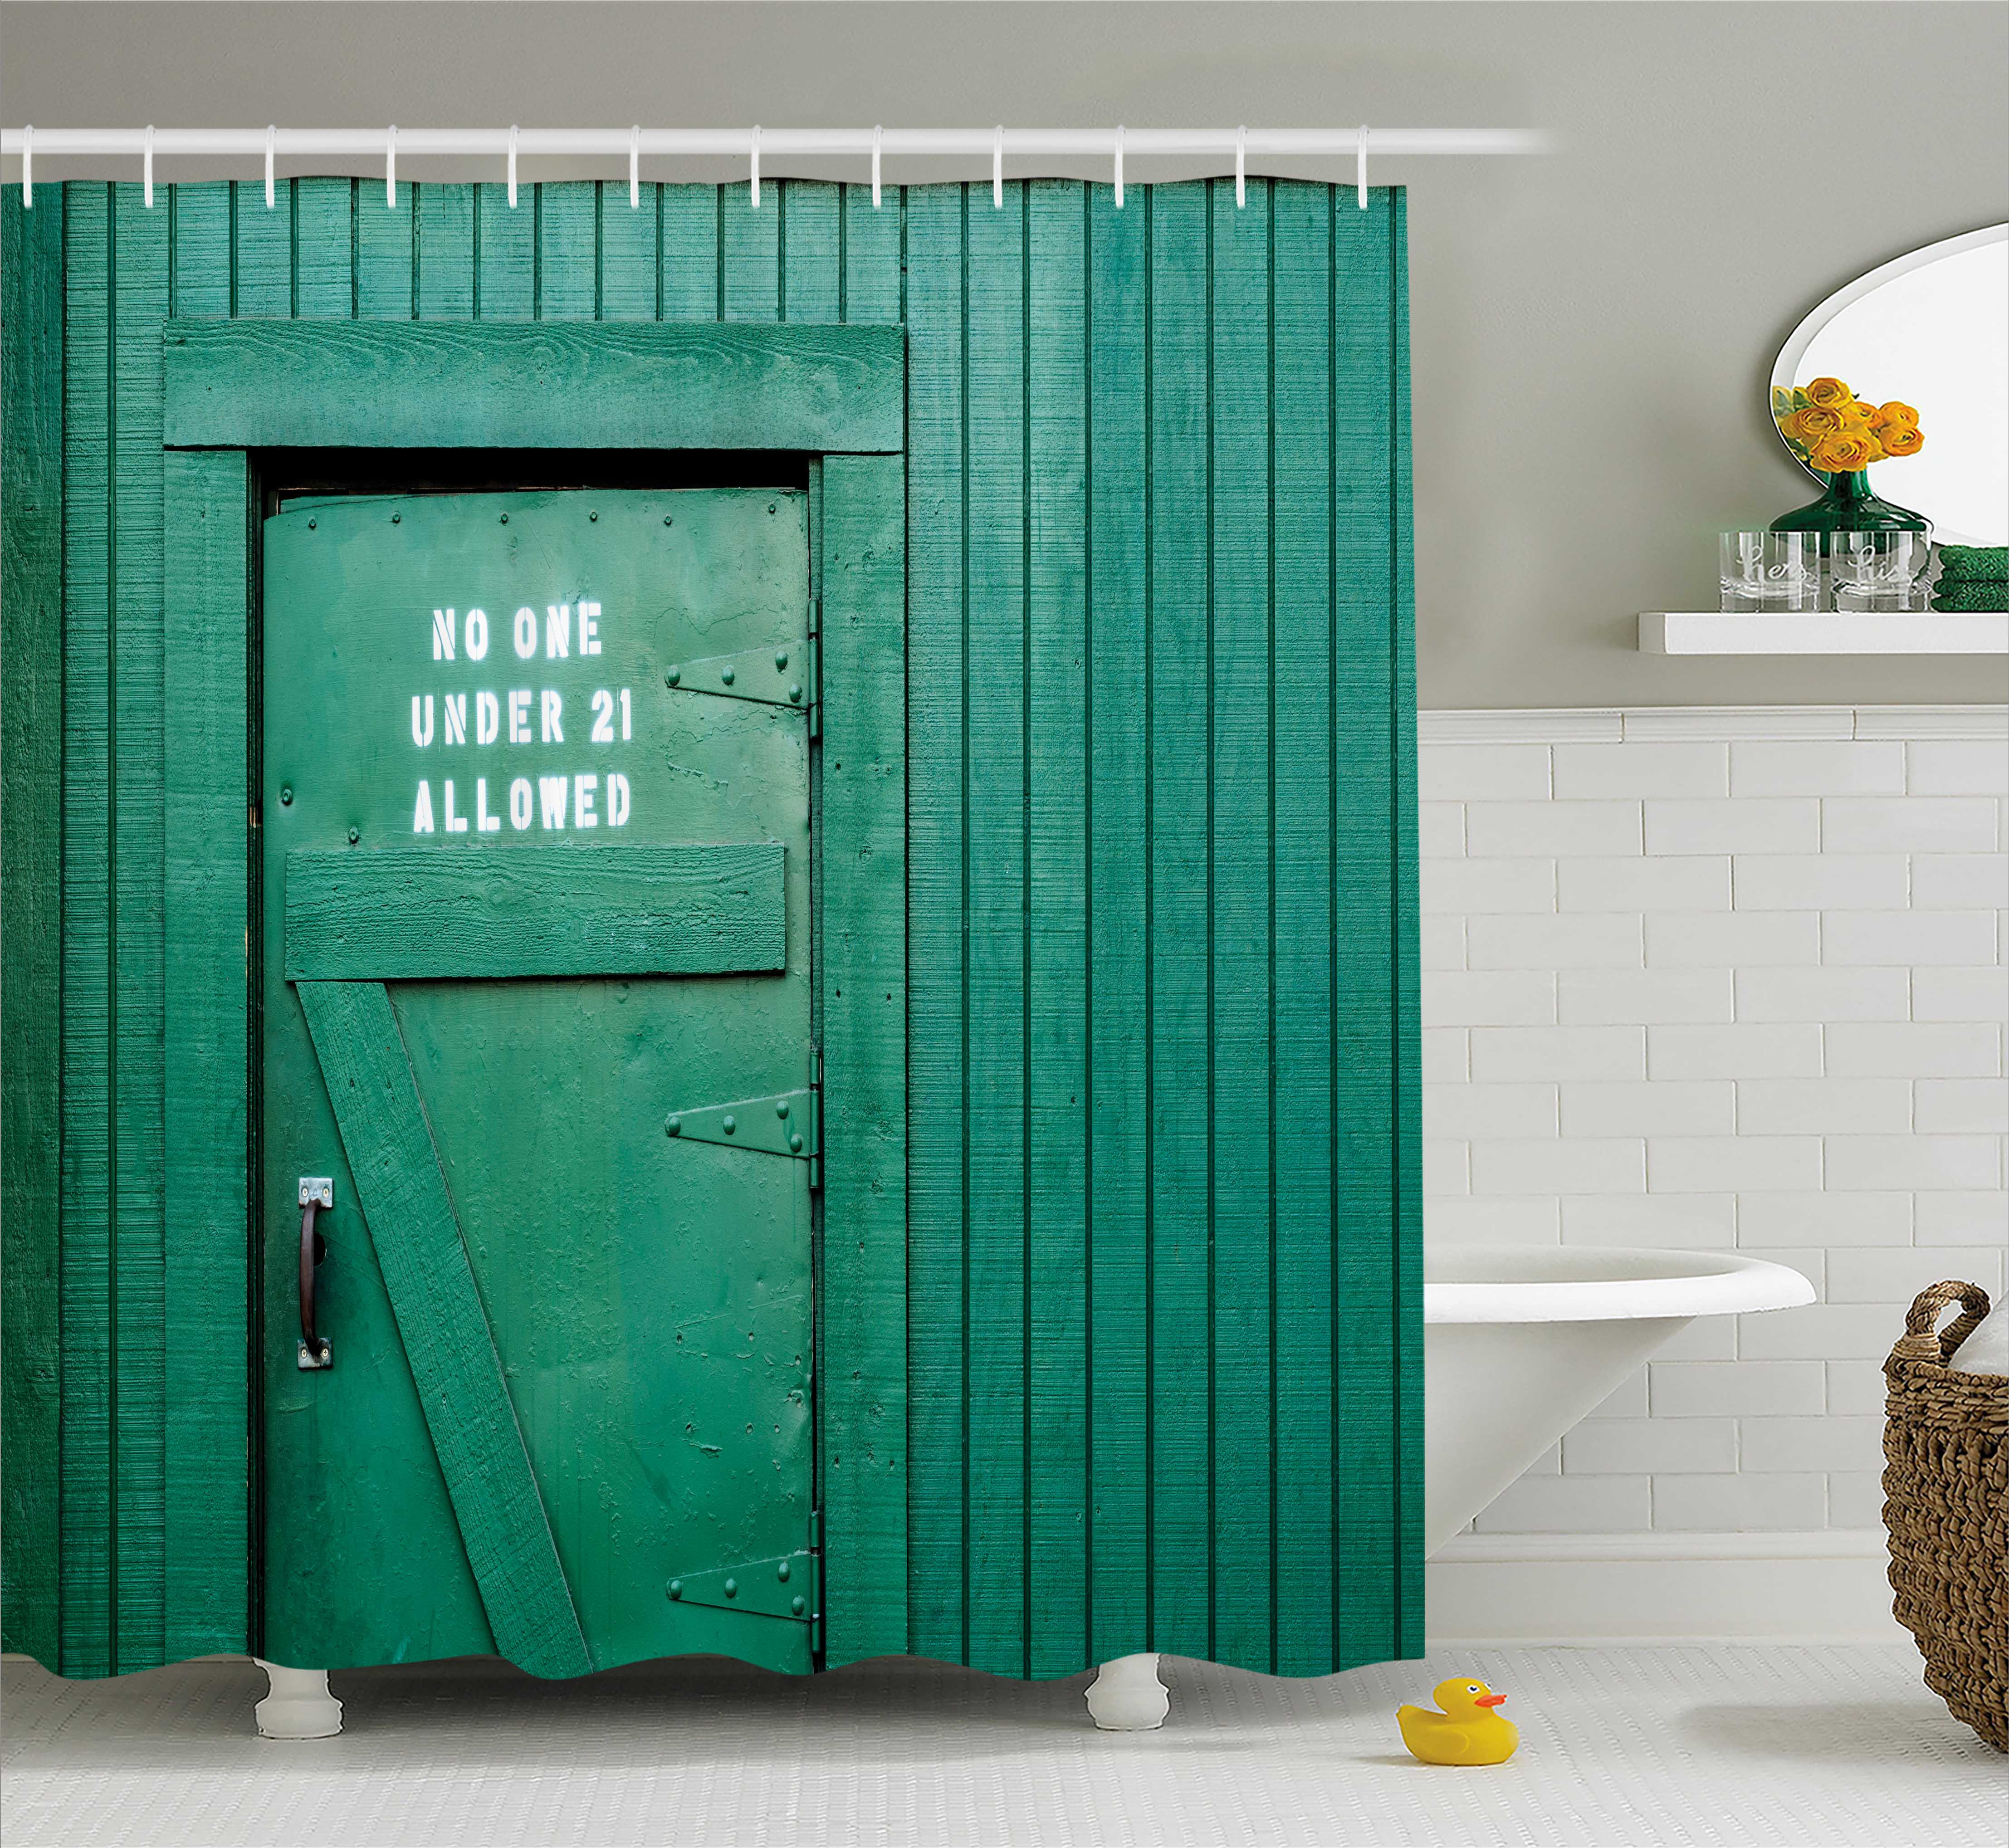 Farm House Decor Shower Curtain, Monochrome Vintage Local Iris Pub Rustic Door with Warning Phrase Culture Photo, Fabric Bathroom Set with Hooks, 69W X 70L Inches, Teal, by Ambesonne